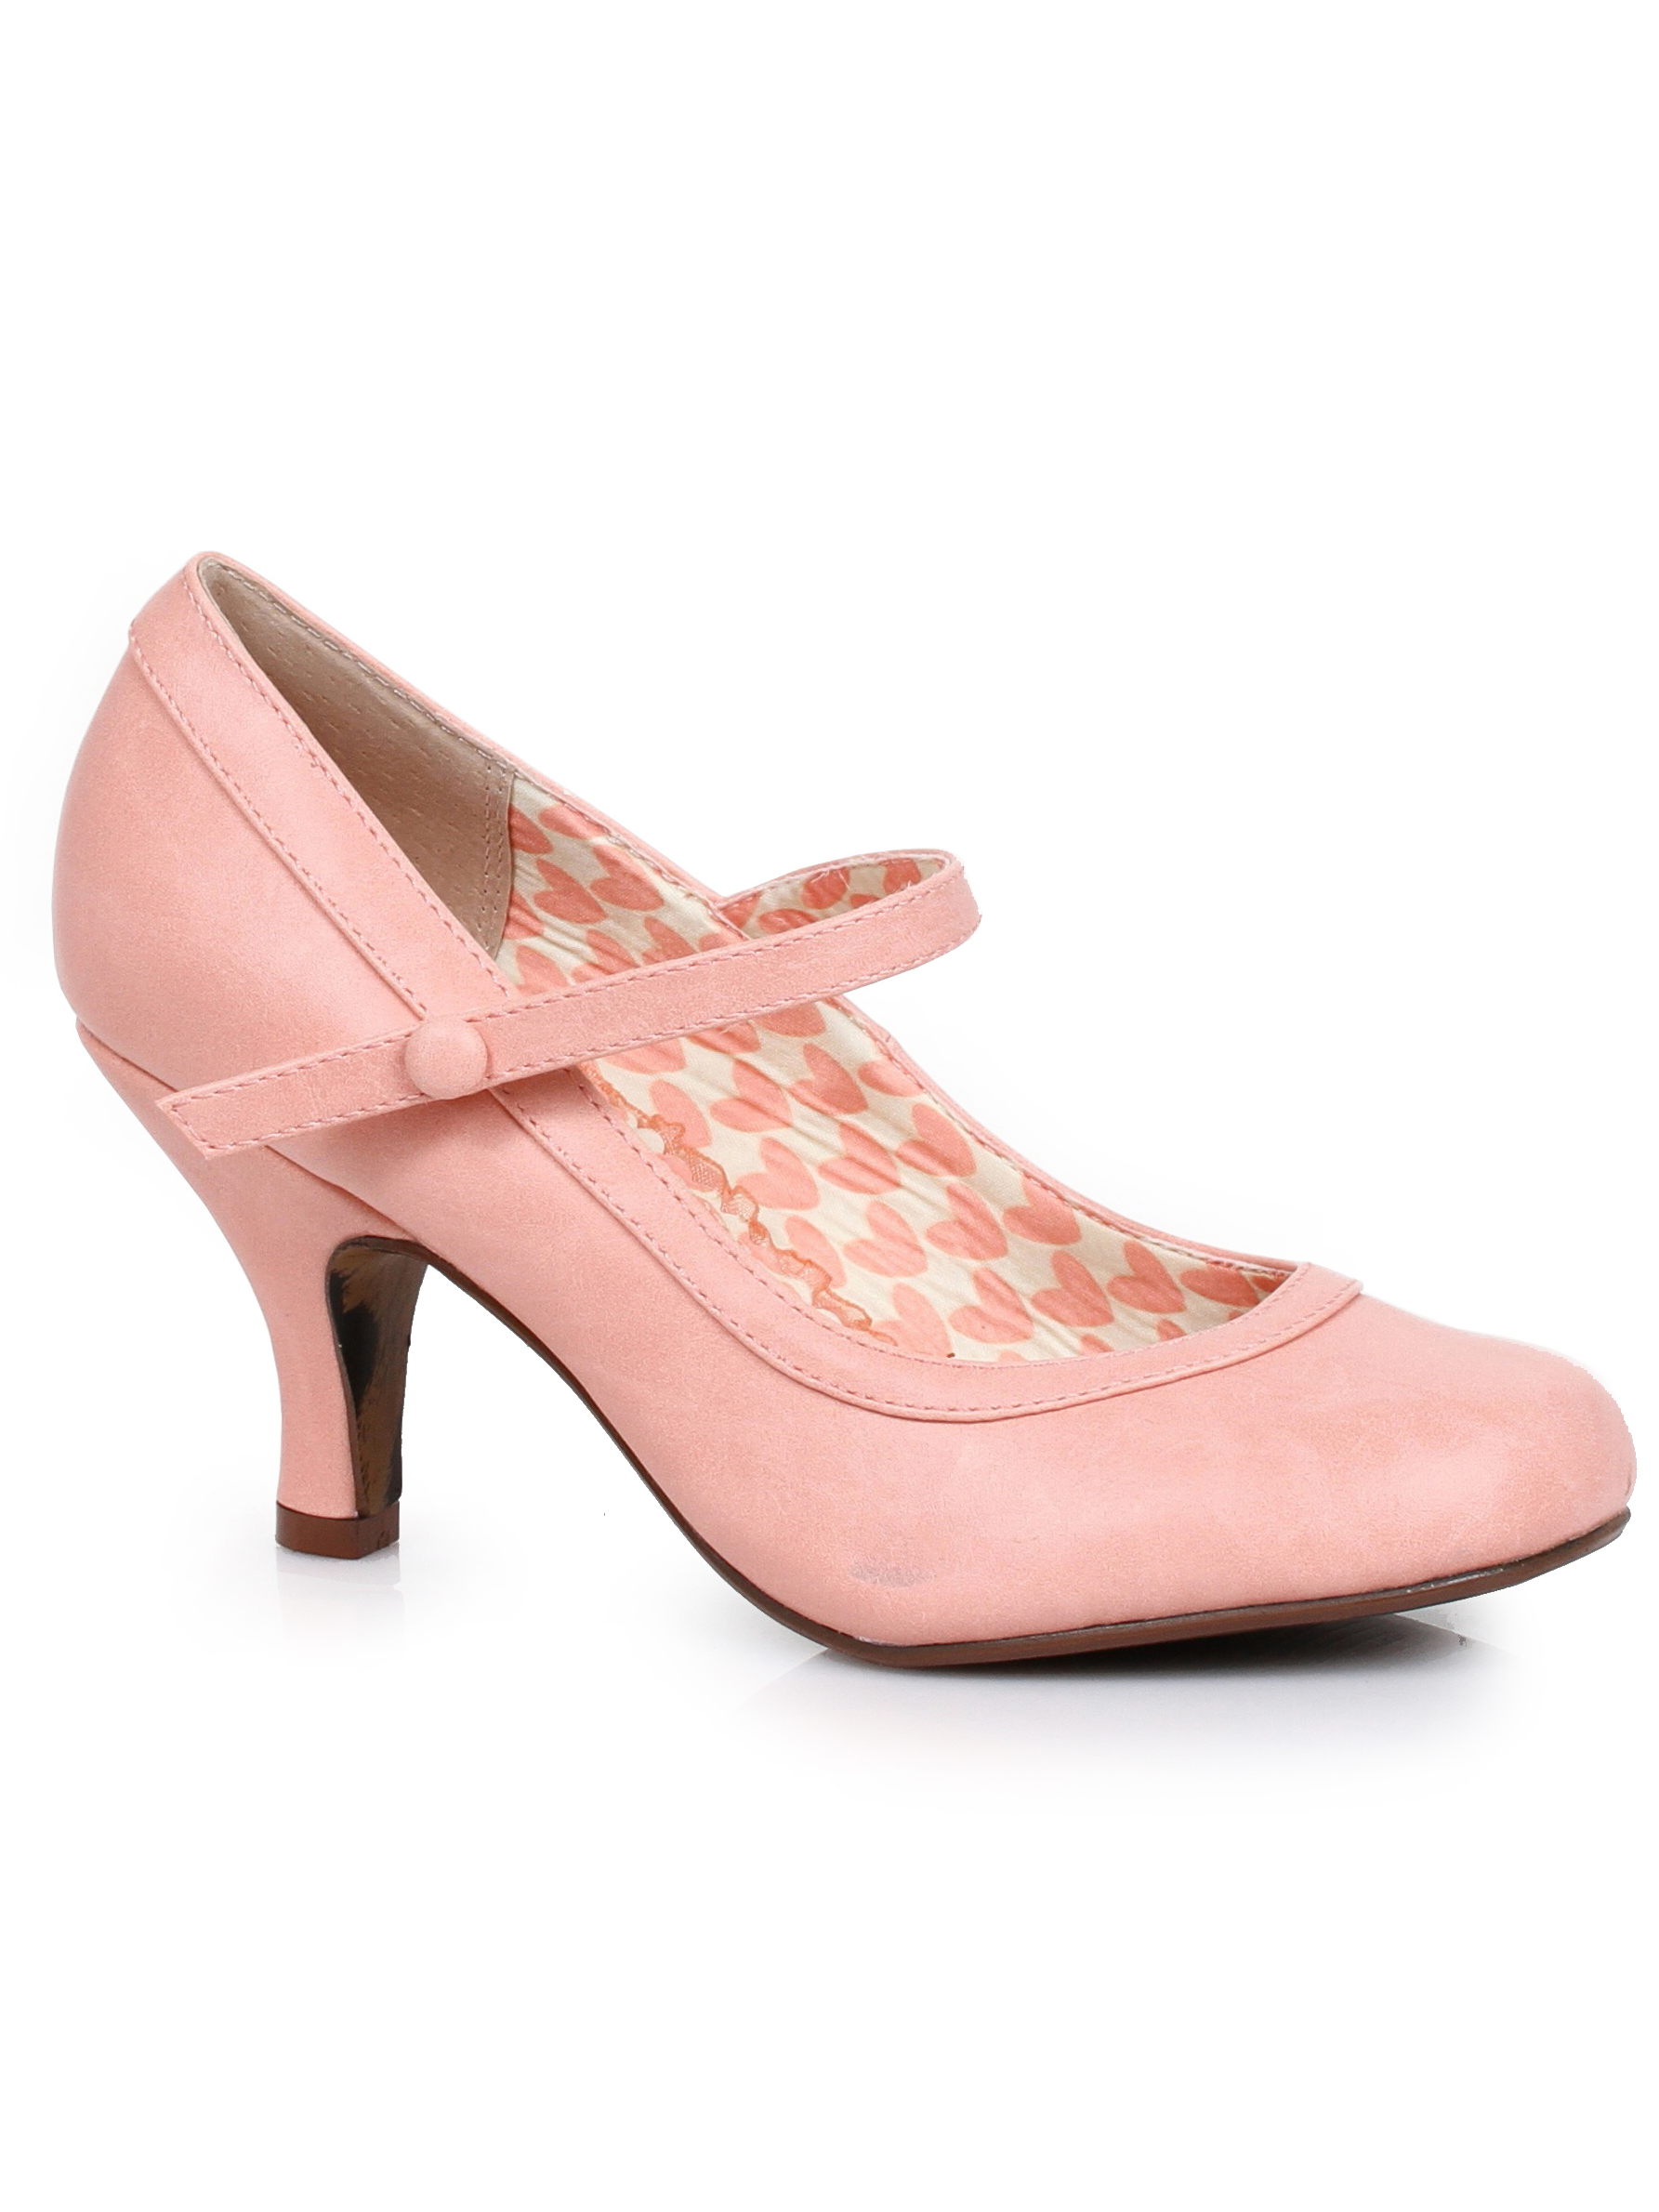 BP320-BETTIE, 3'' Retro Mary Jane Heel Shoes